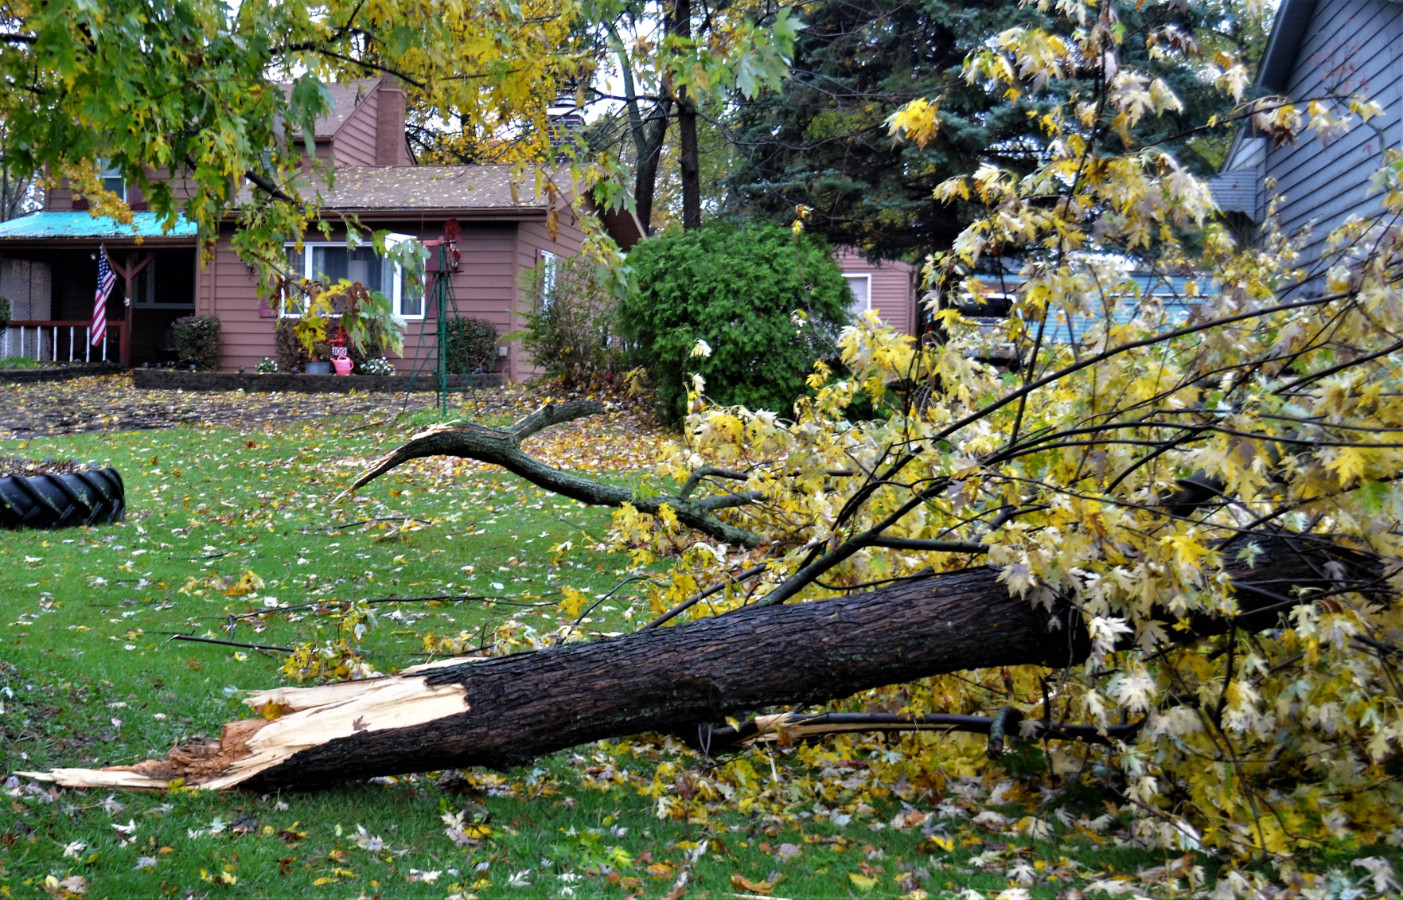 Vic's Corner: Storm Damage Northfield Village - Last night and this morning